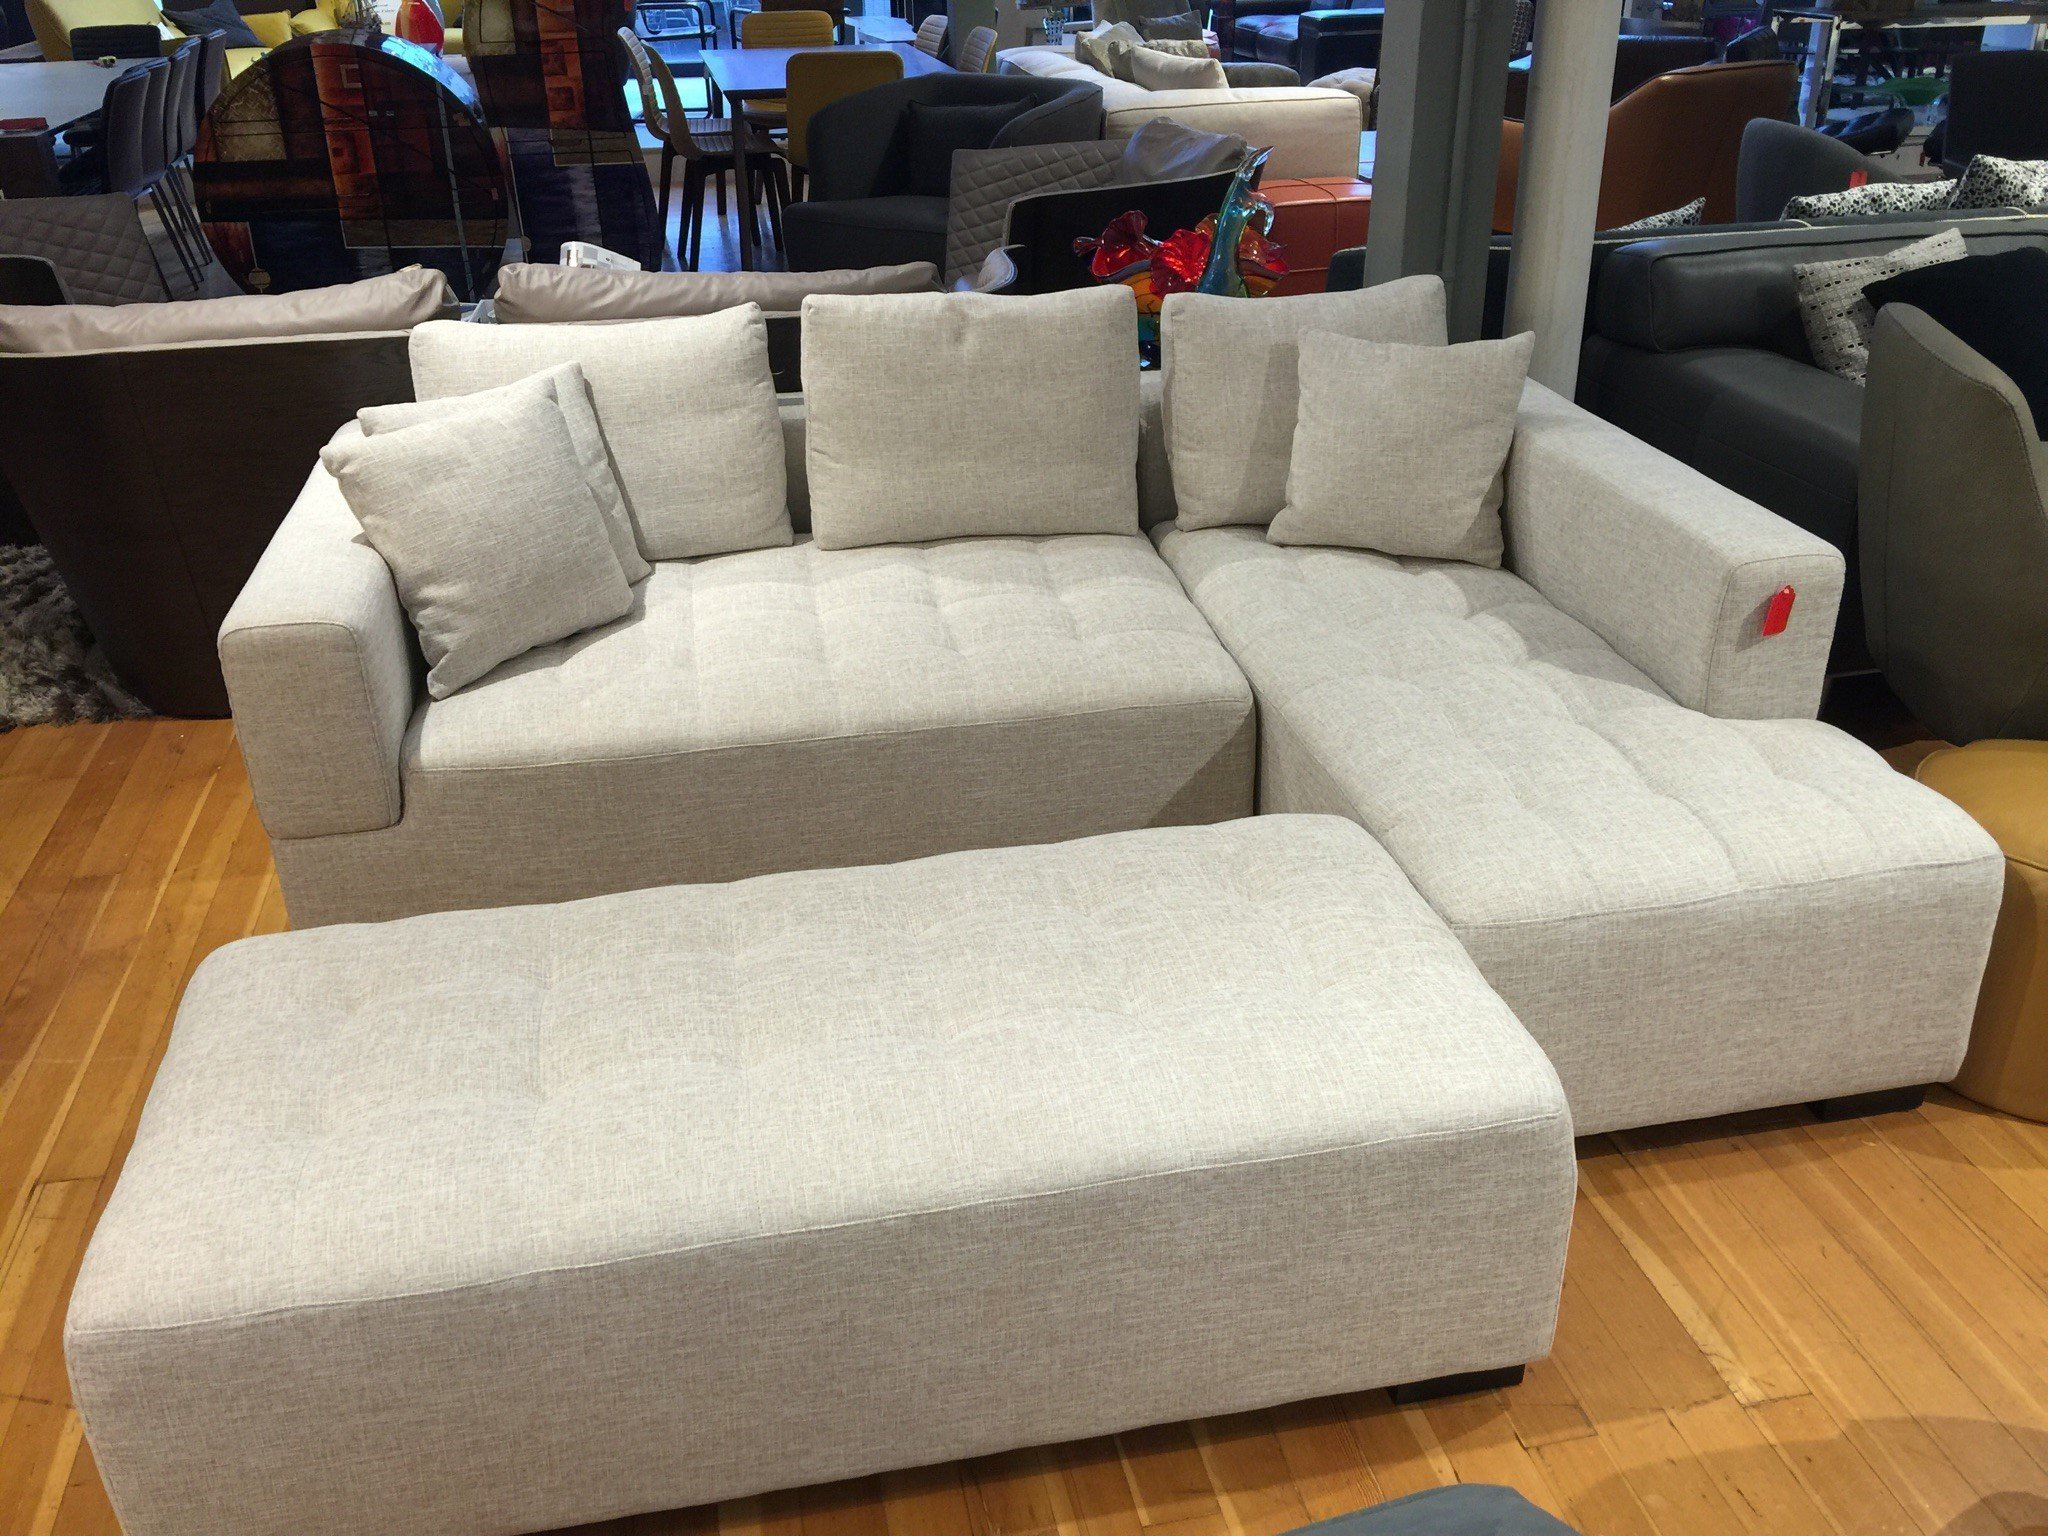 Clearance Furniture San Francisco Affordable Made In Usa Living Room Furniture In Sf Your